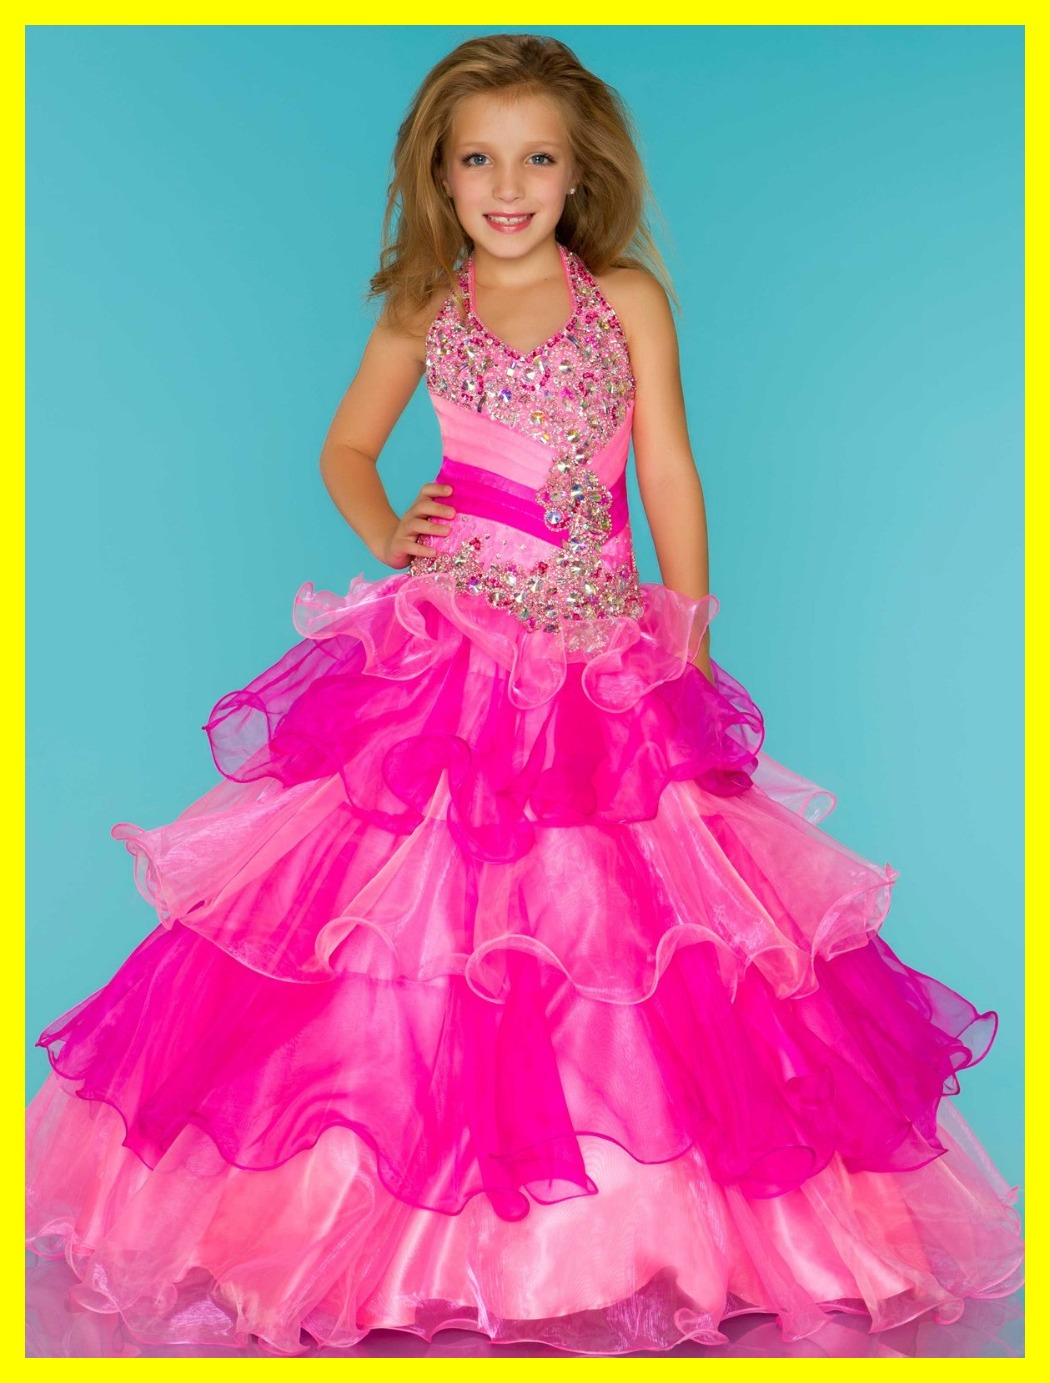 Shop Flower Girl Dresses! Designer & brand items for little & junior girls · Latest collection · Discounted prices · Free shipping over $